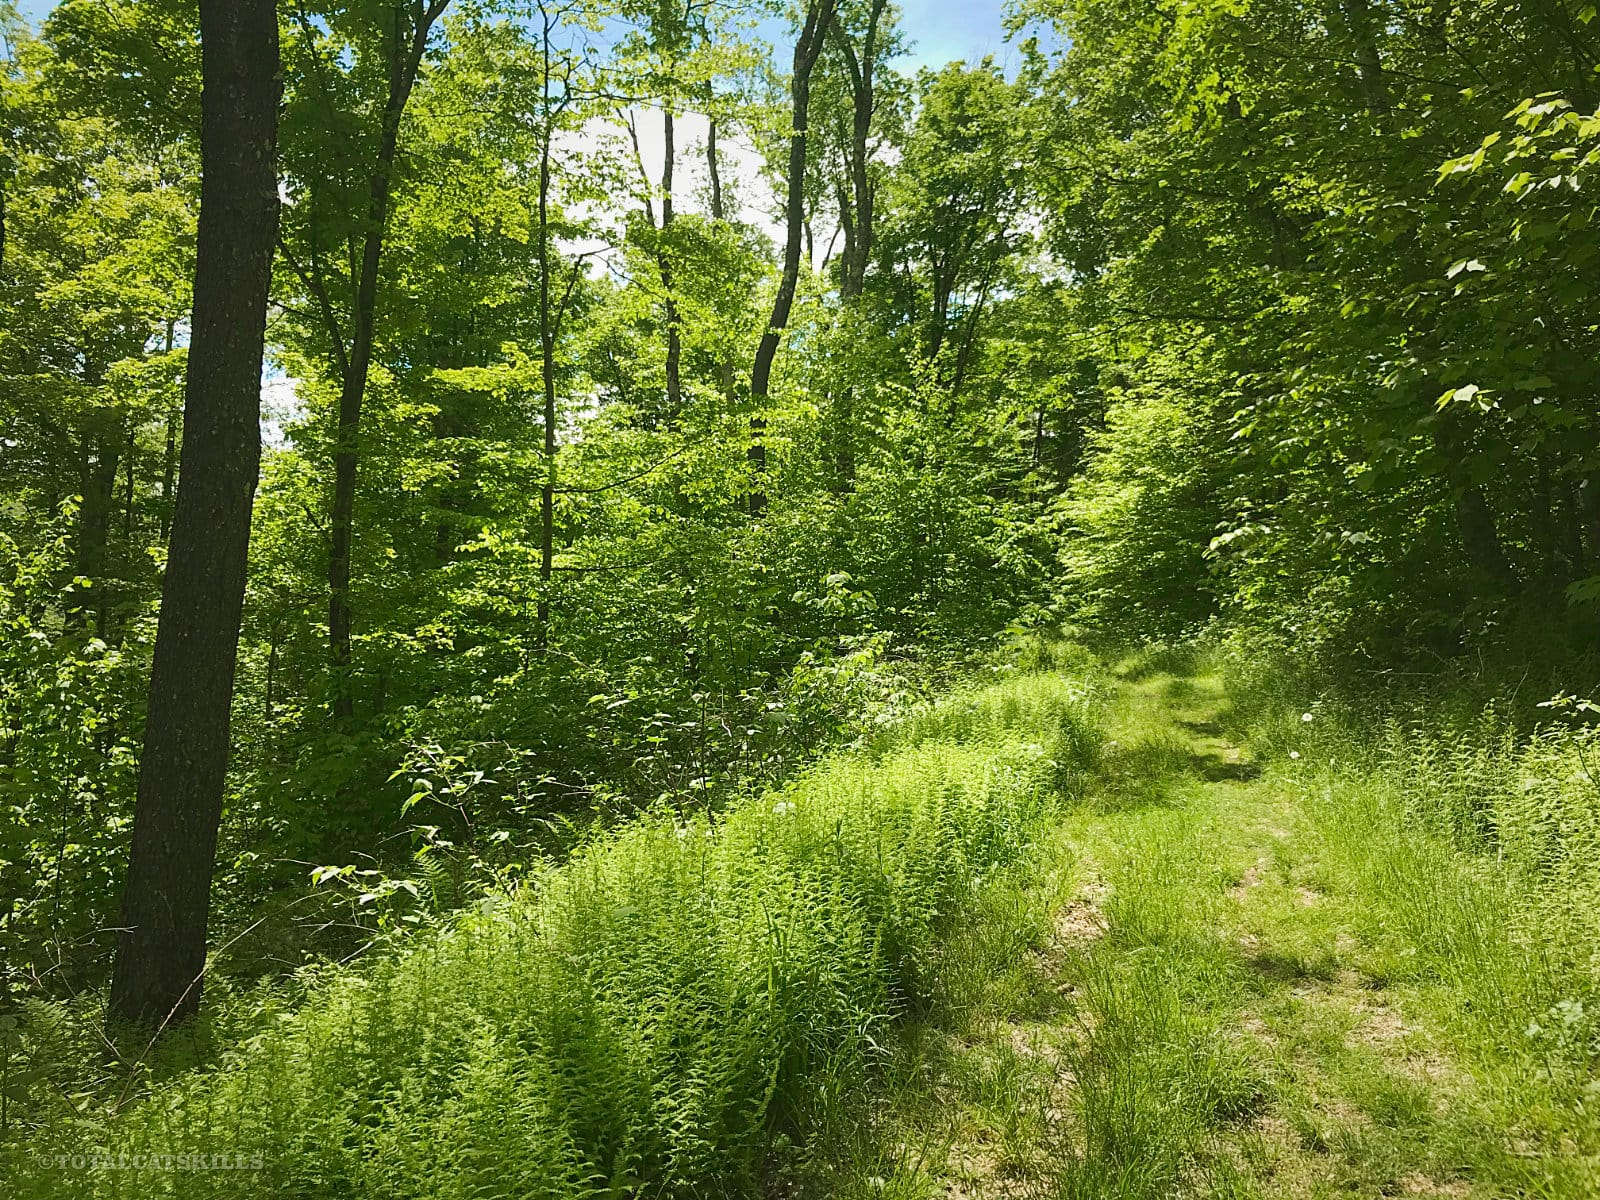 grassy hiking trail in forest